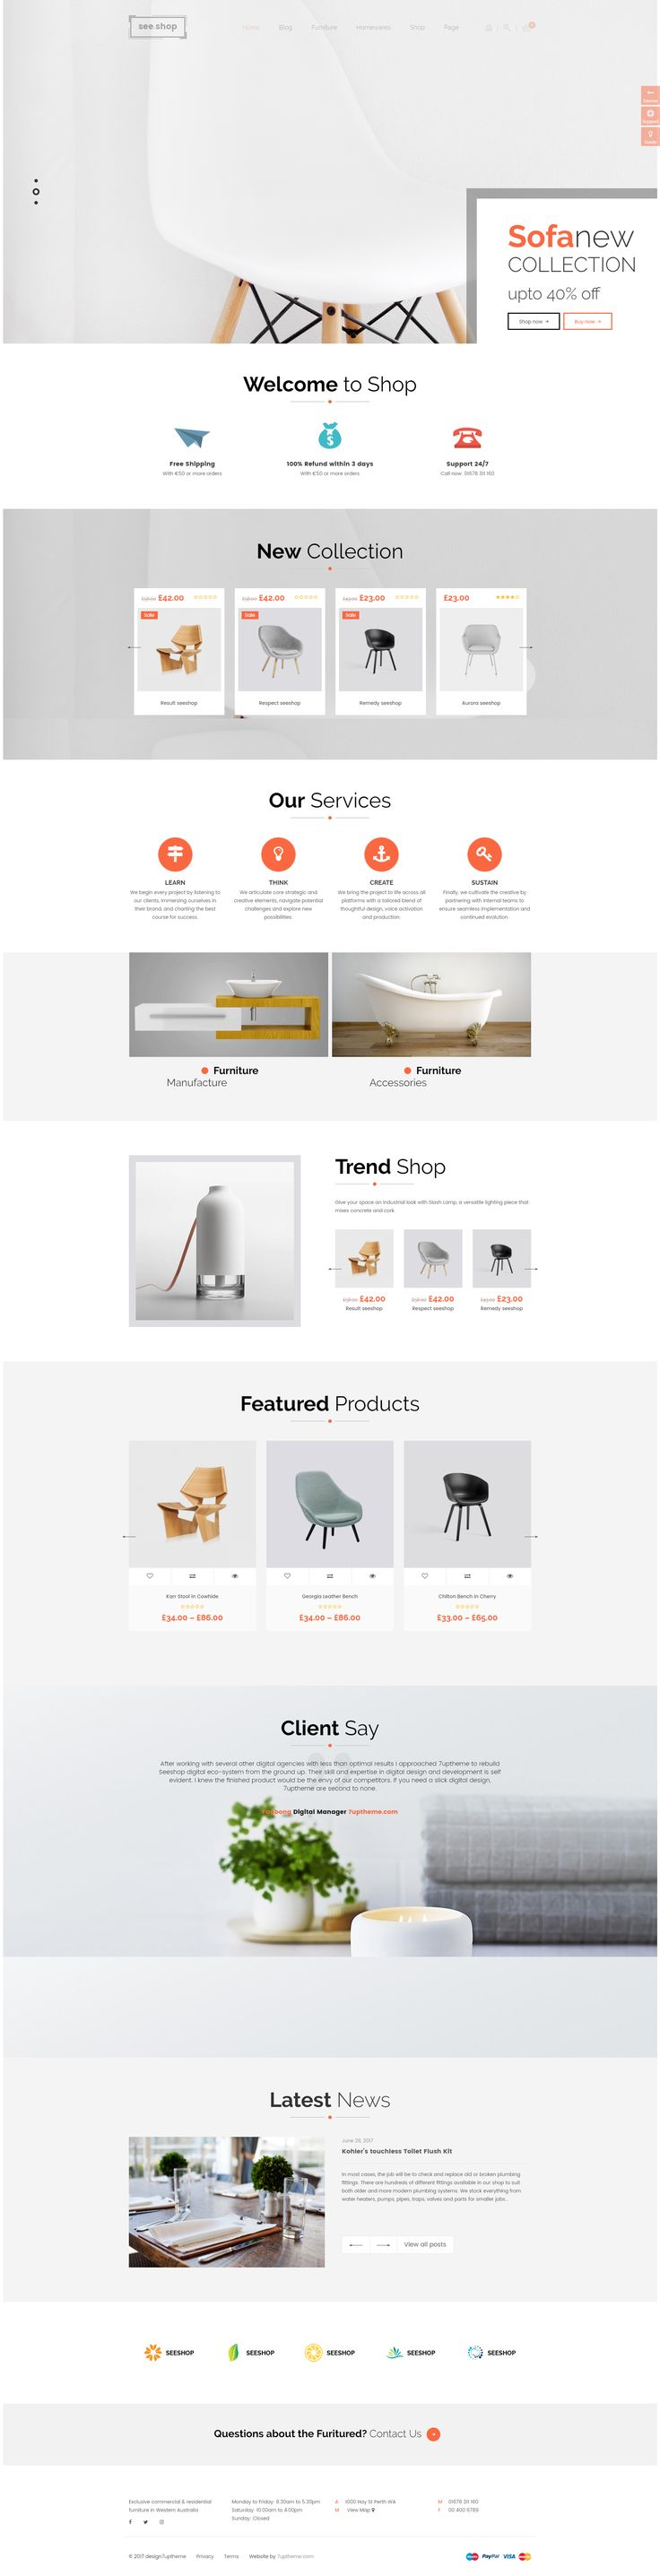 See.Shop is a #modern, #clean and #professional #WordPress #Woocommerce #Theme, It is fully responsive, it looks stunning on all types of screens and devices. It is super for fashion shop, digital shop, games shop, food shop, devices shop, household appliances shop or any other categories. #website